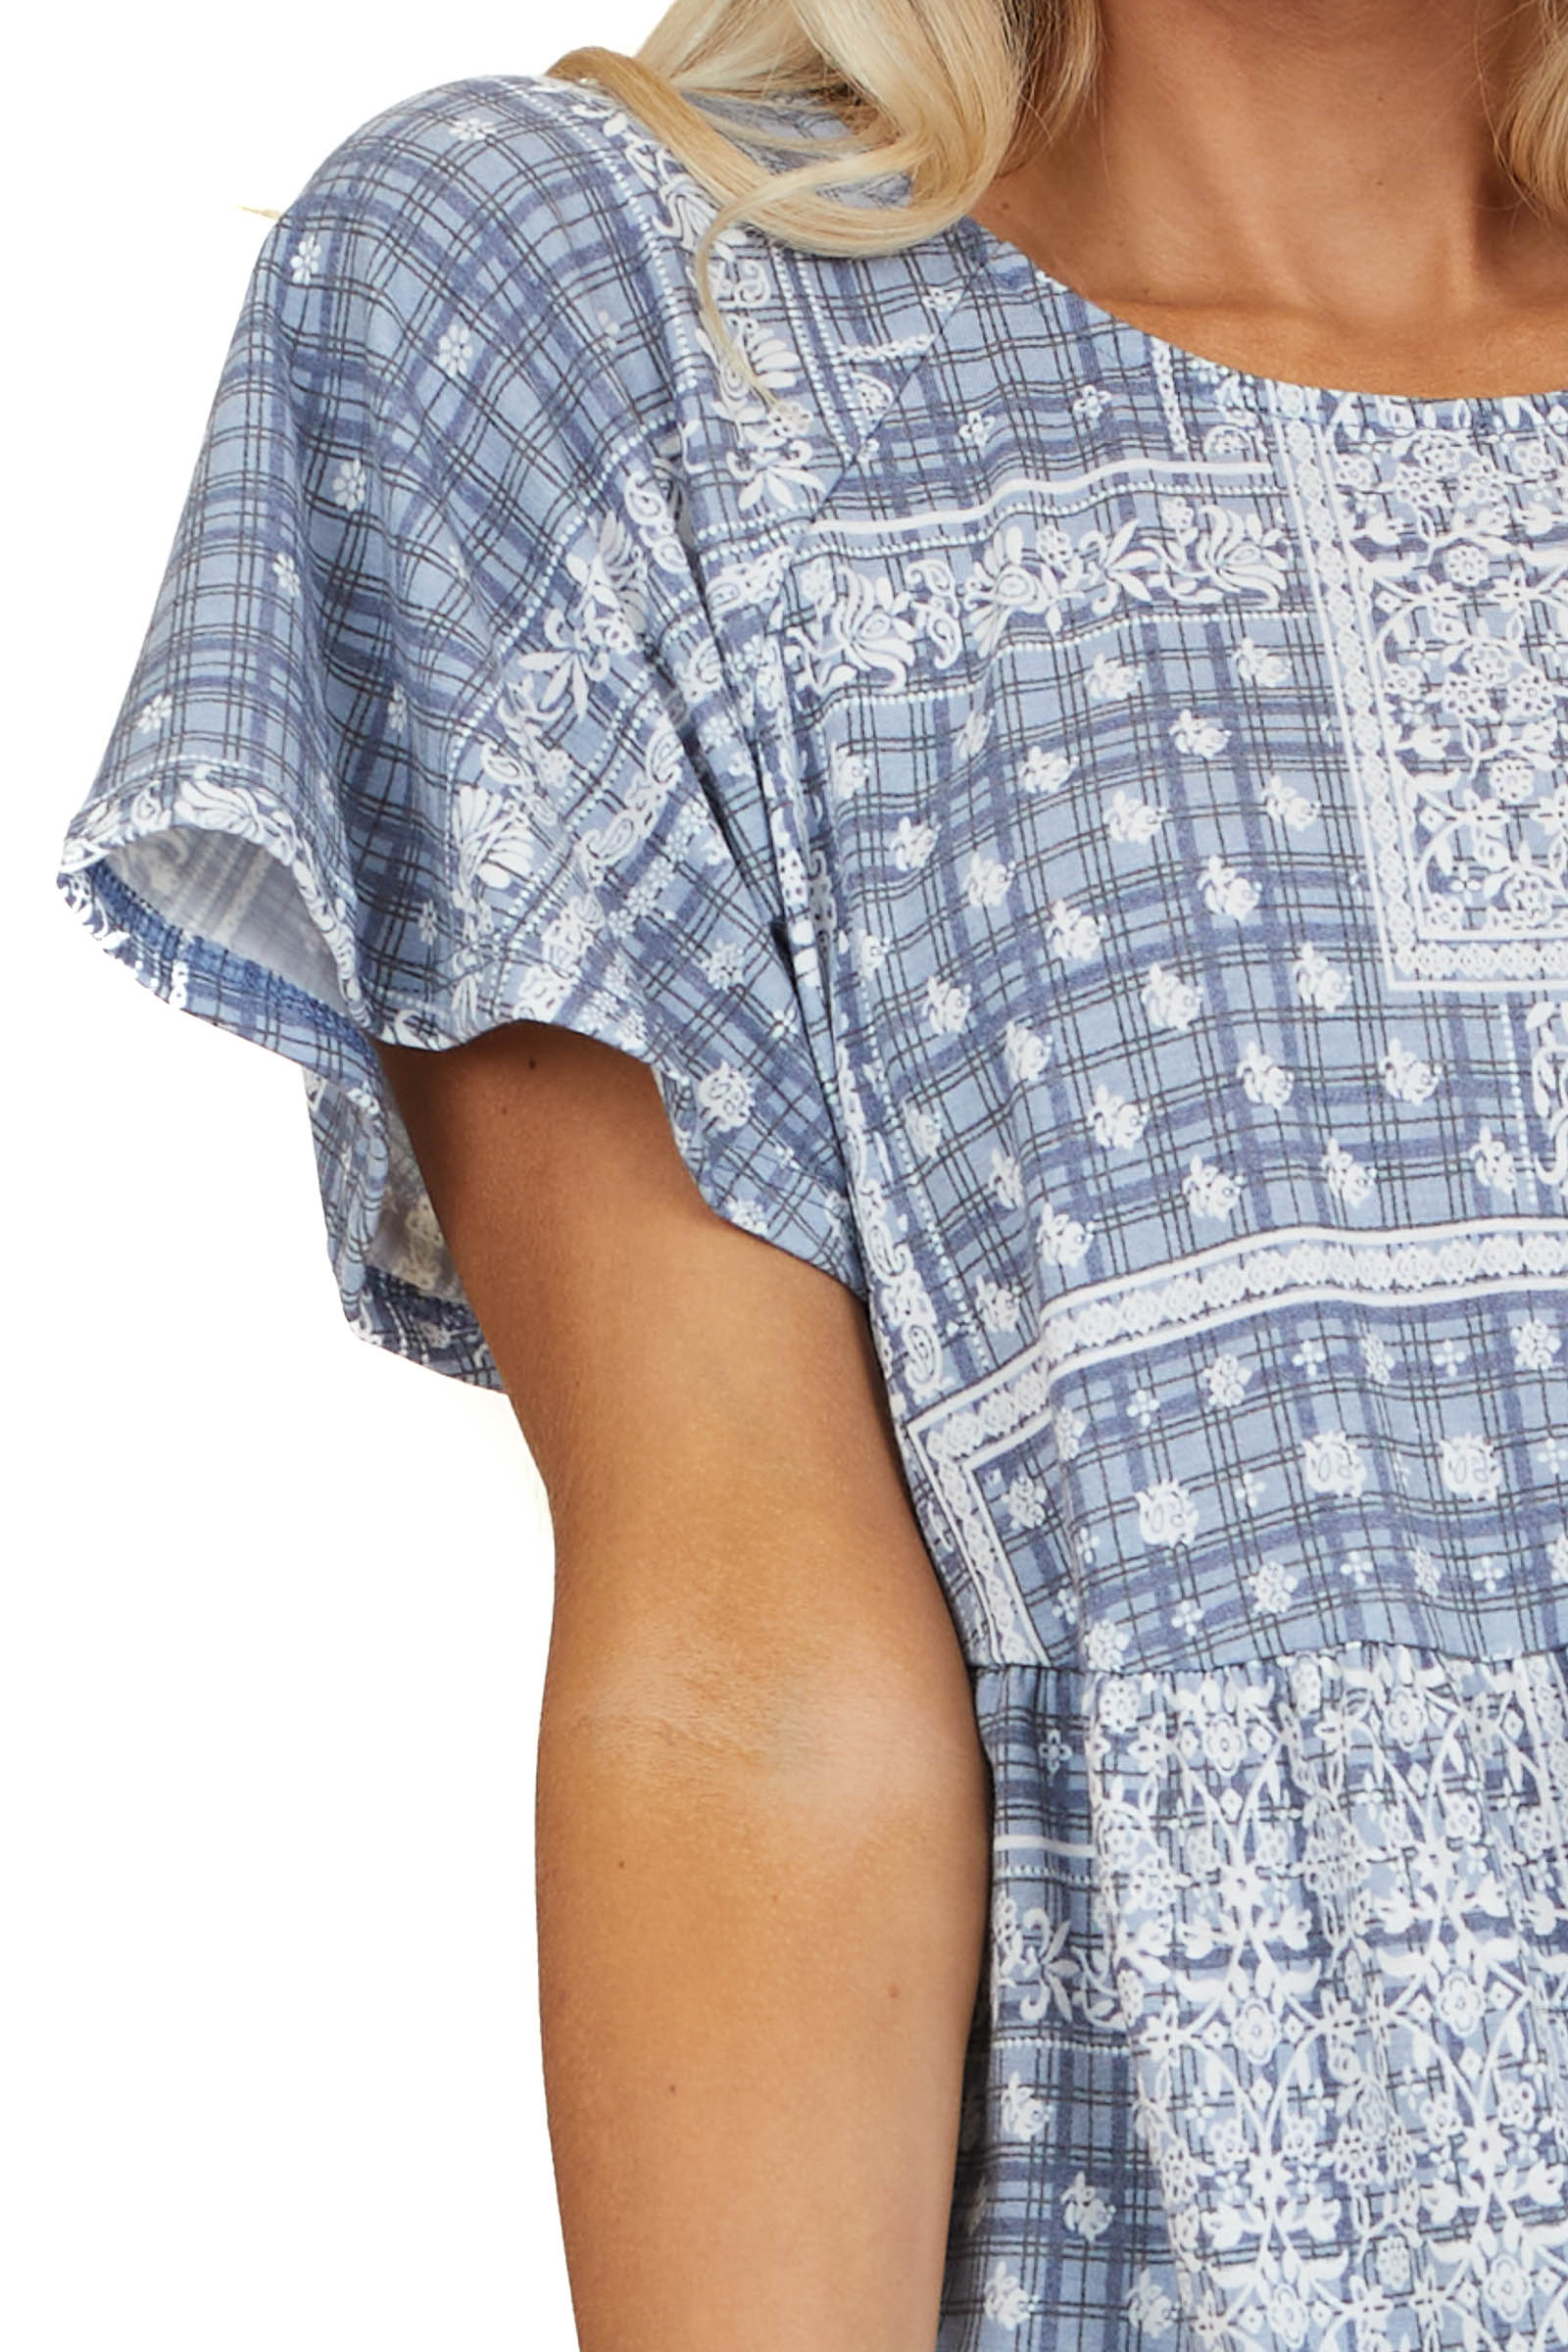 Dusty Blue Printed Drop Waist Knit Top with Short Sleeves